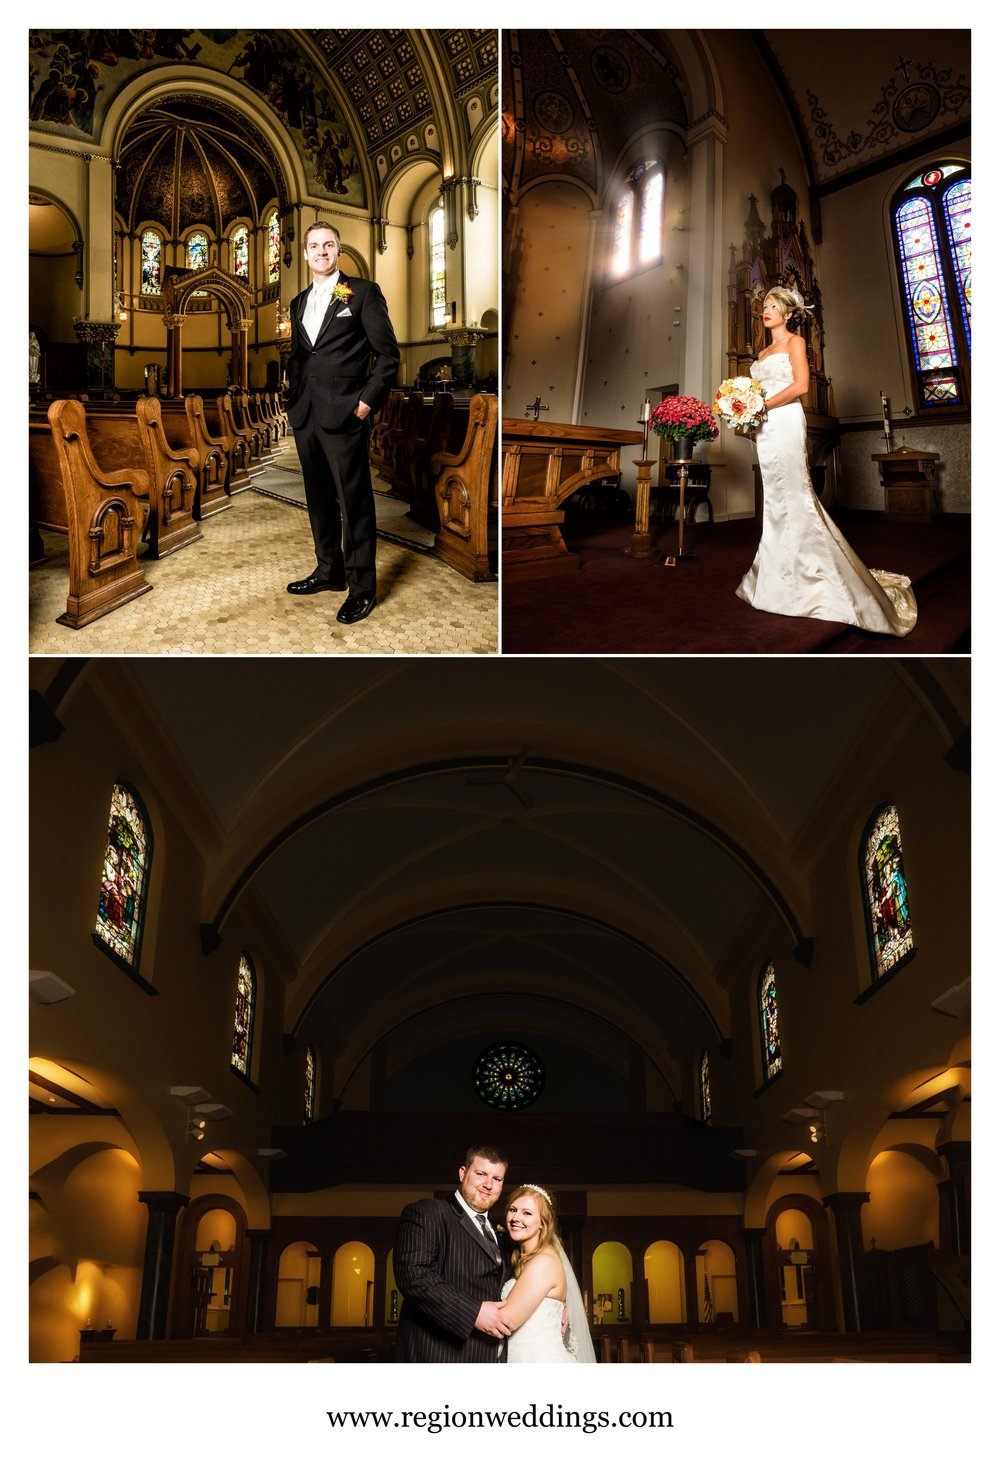 Bride and groom church wedding portraits.